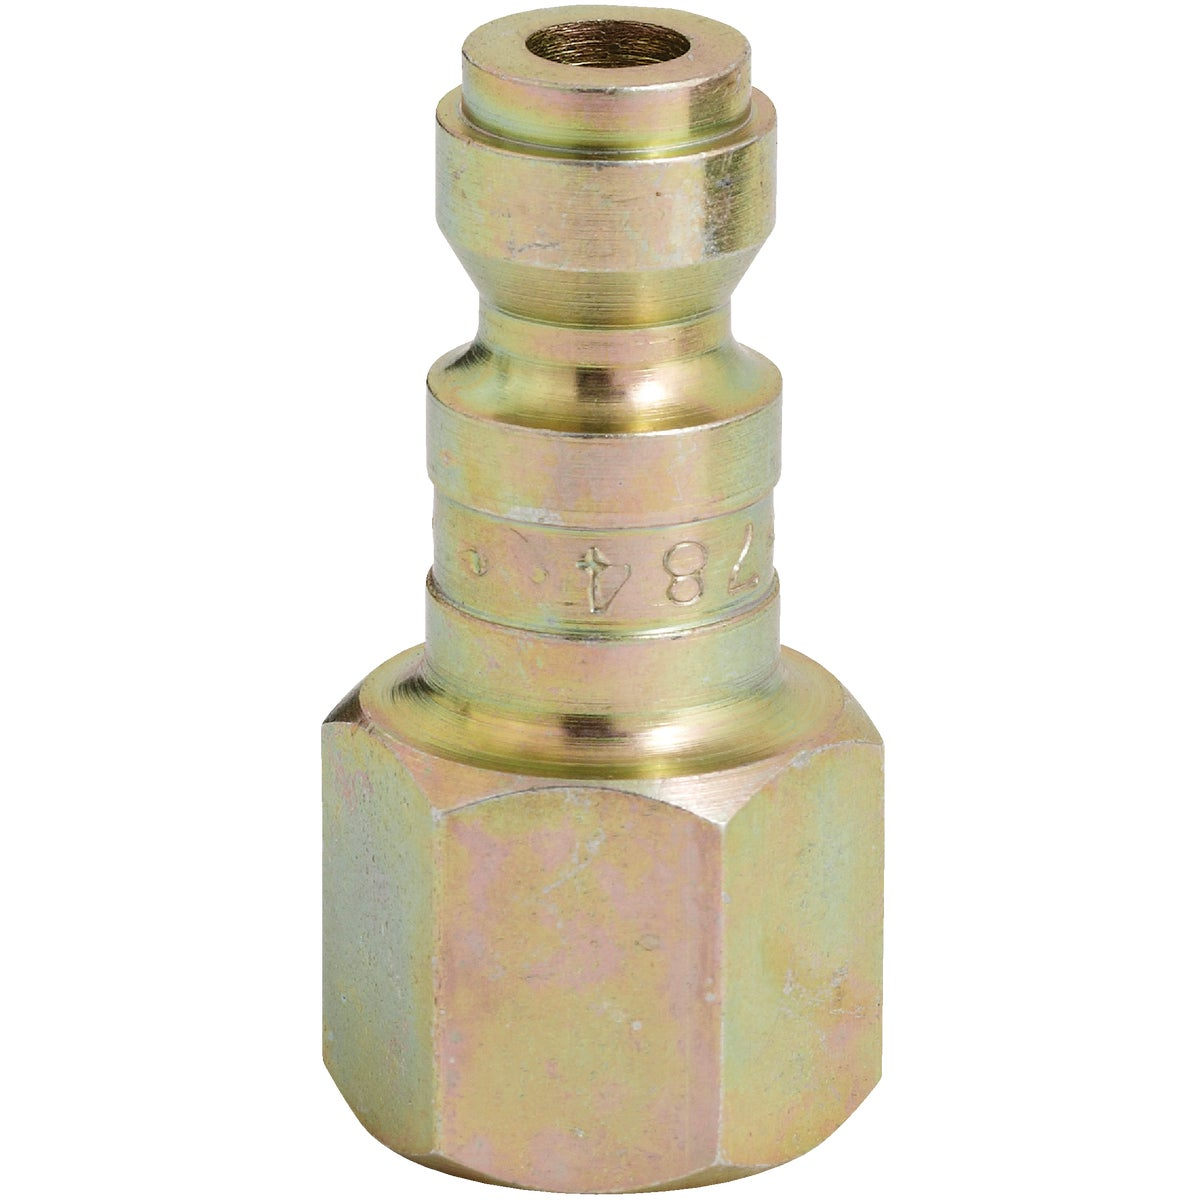 1/4 FEMALE T STYLE PLUG - S-784 by Milton Ind/ Incom